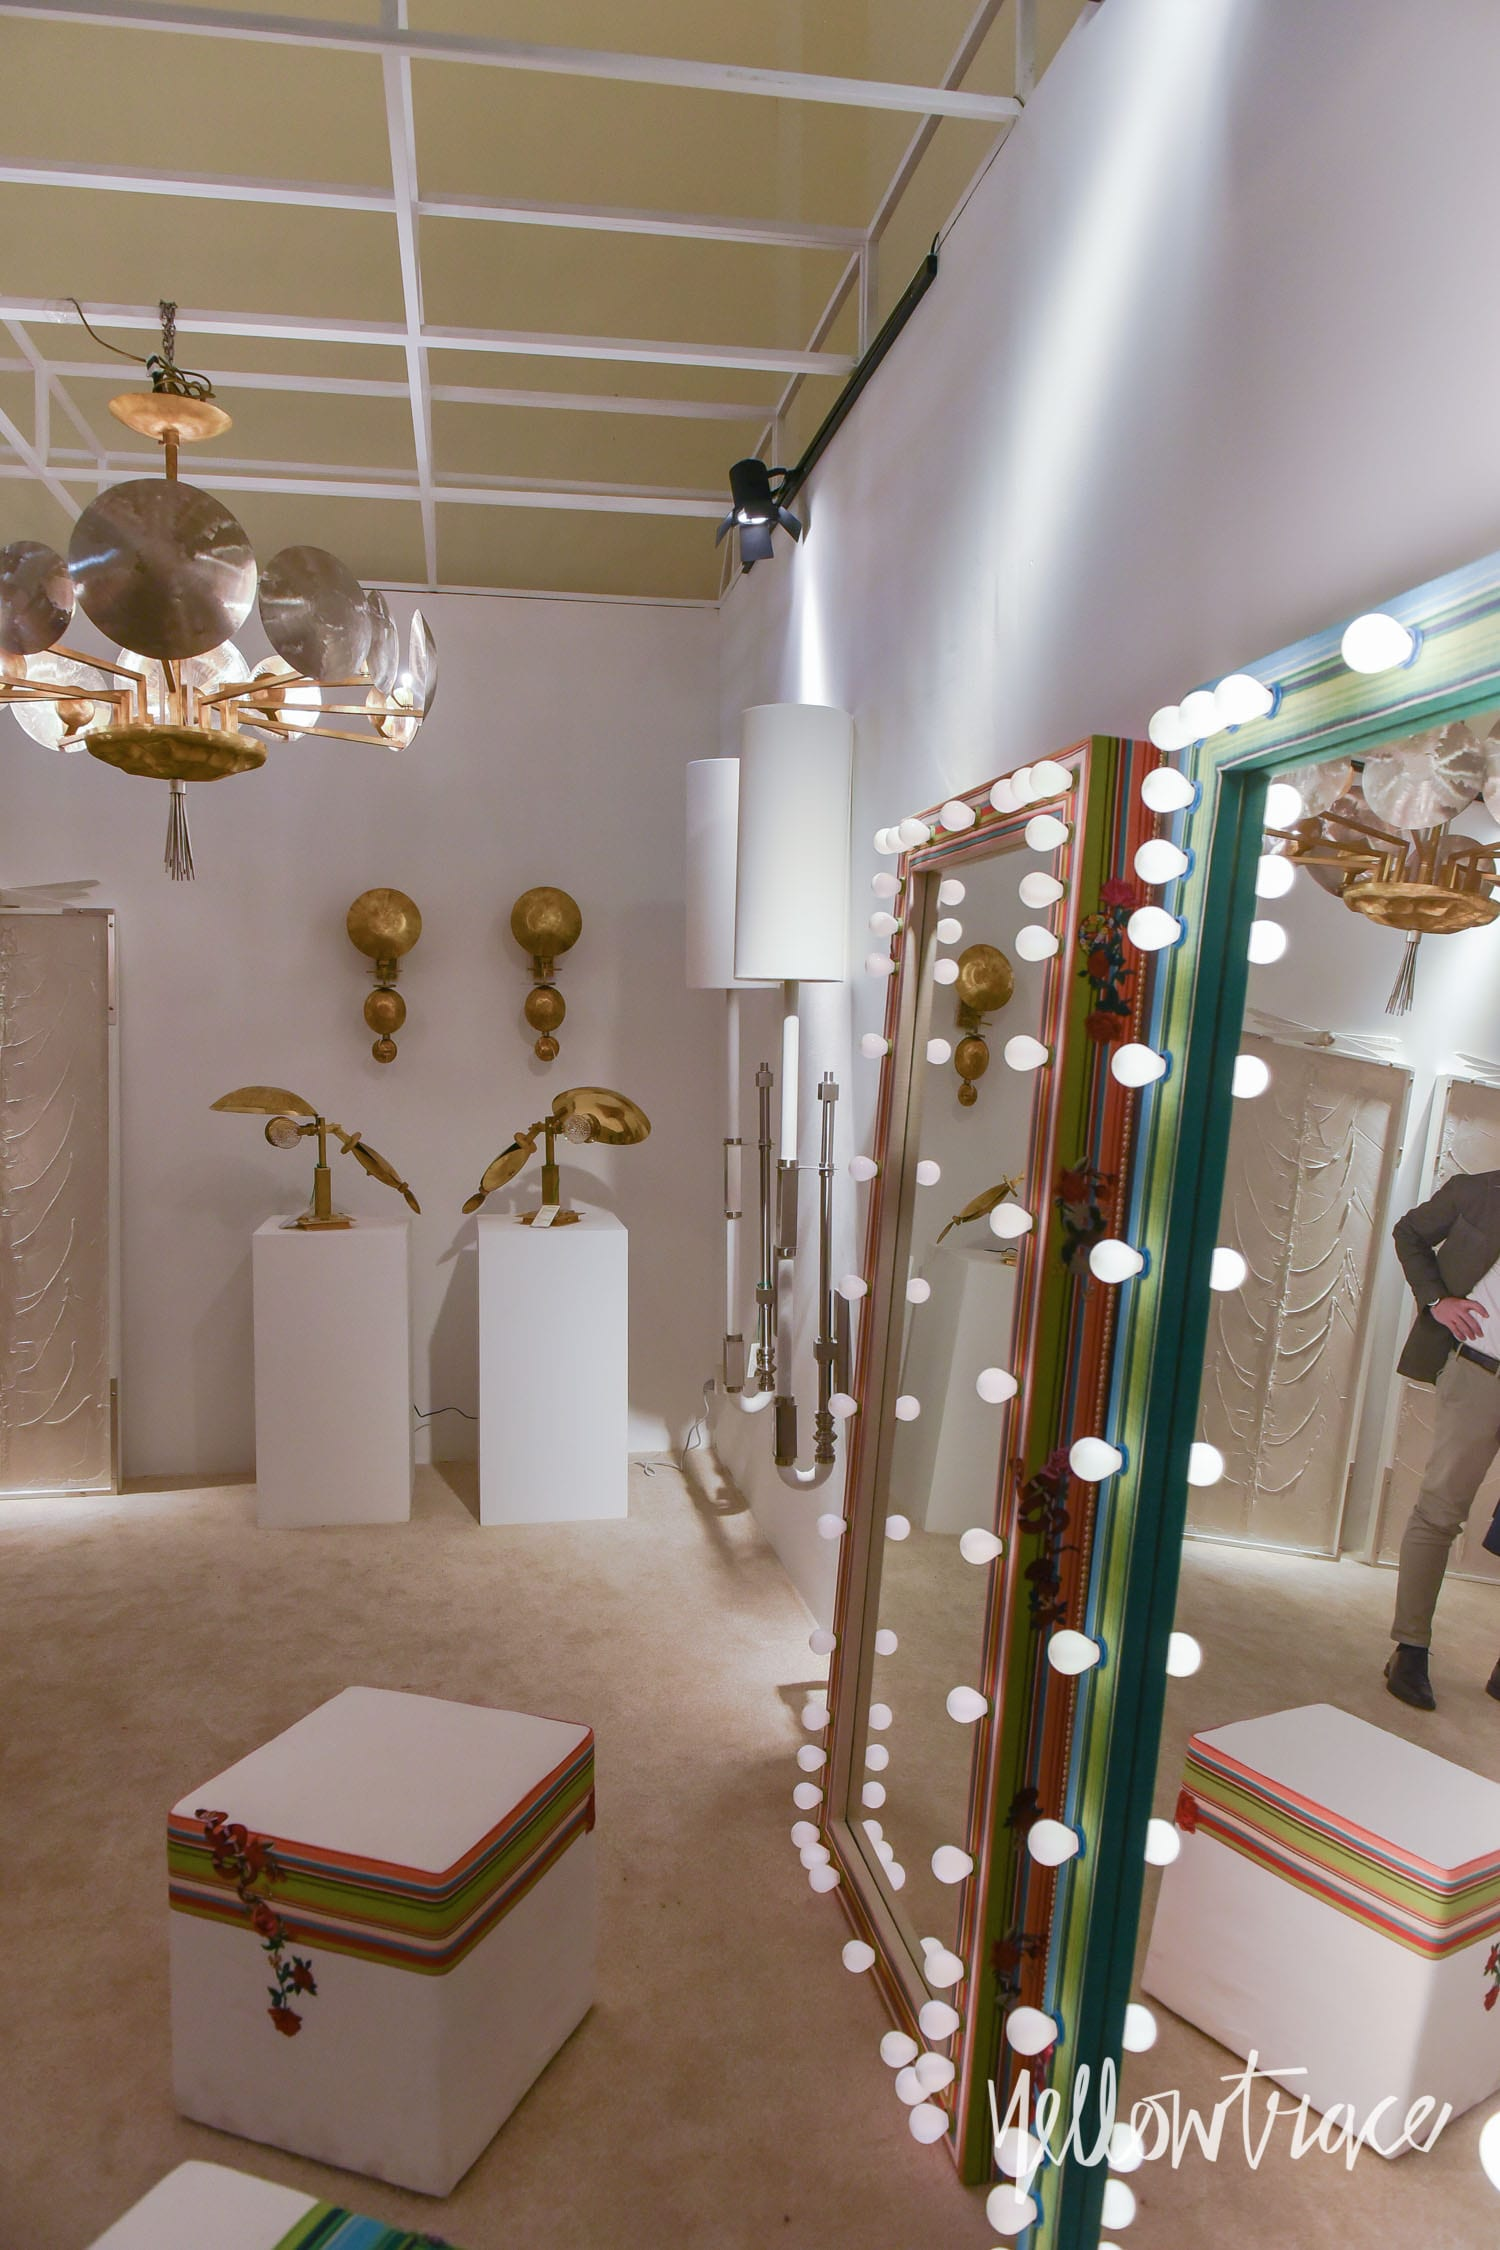 Highlights from salone del mobile milano shanghai 2017 yellowtrace - Salone del mobile a milano ...